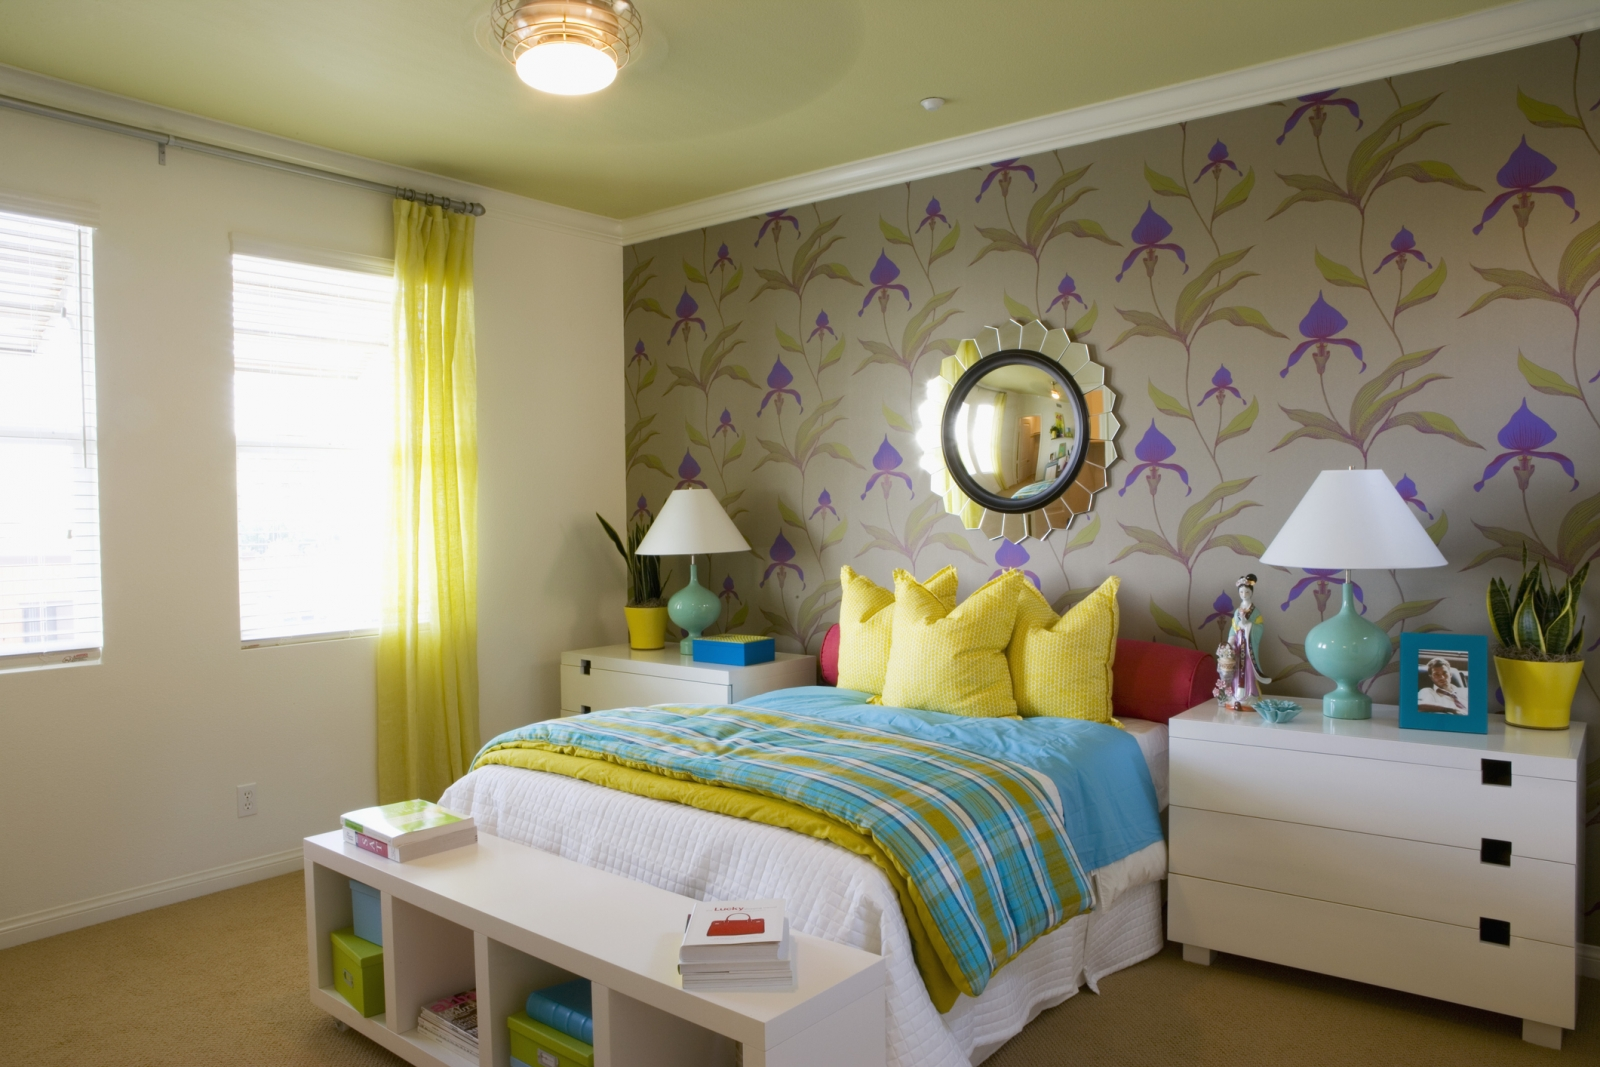 Removable Wallpaper Is Easy Temporary Decor For Renters Streeteasy